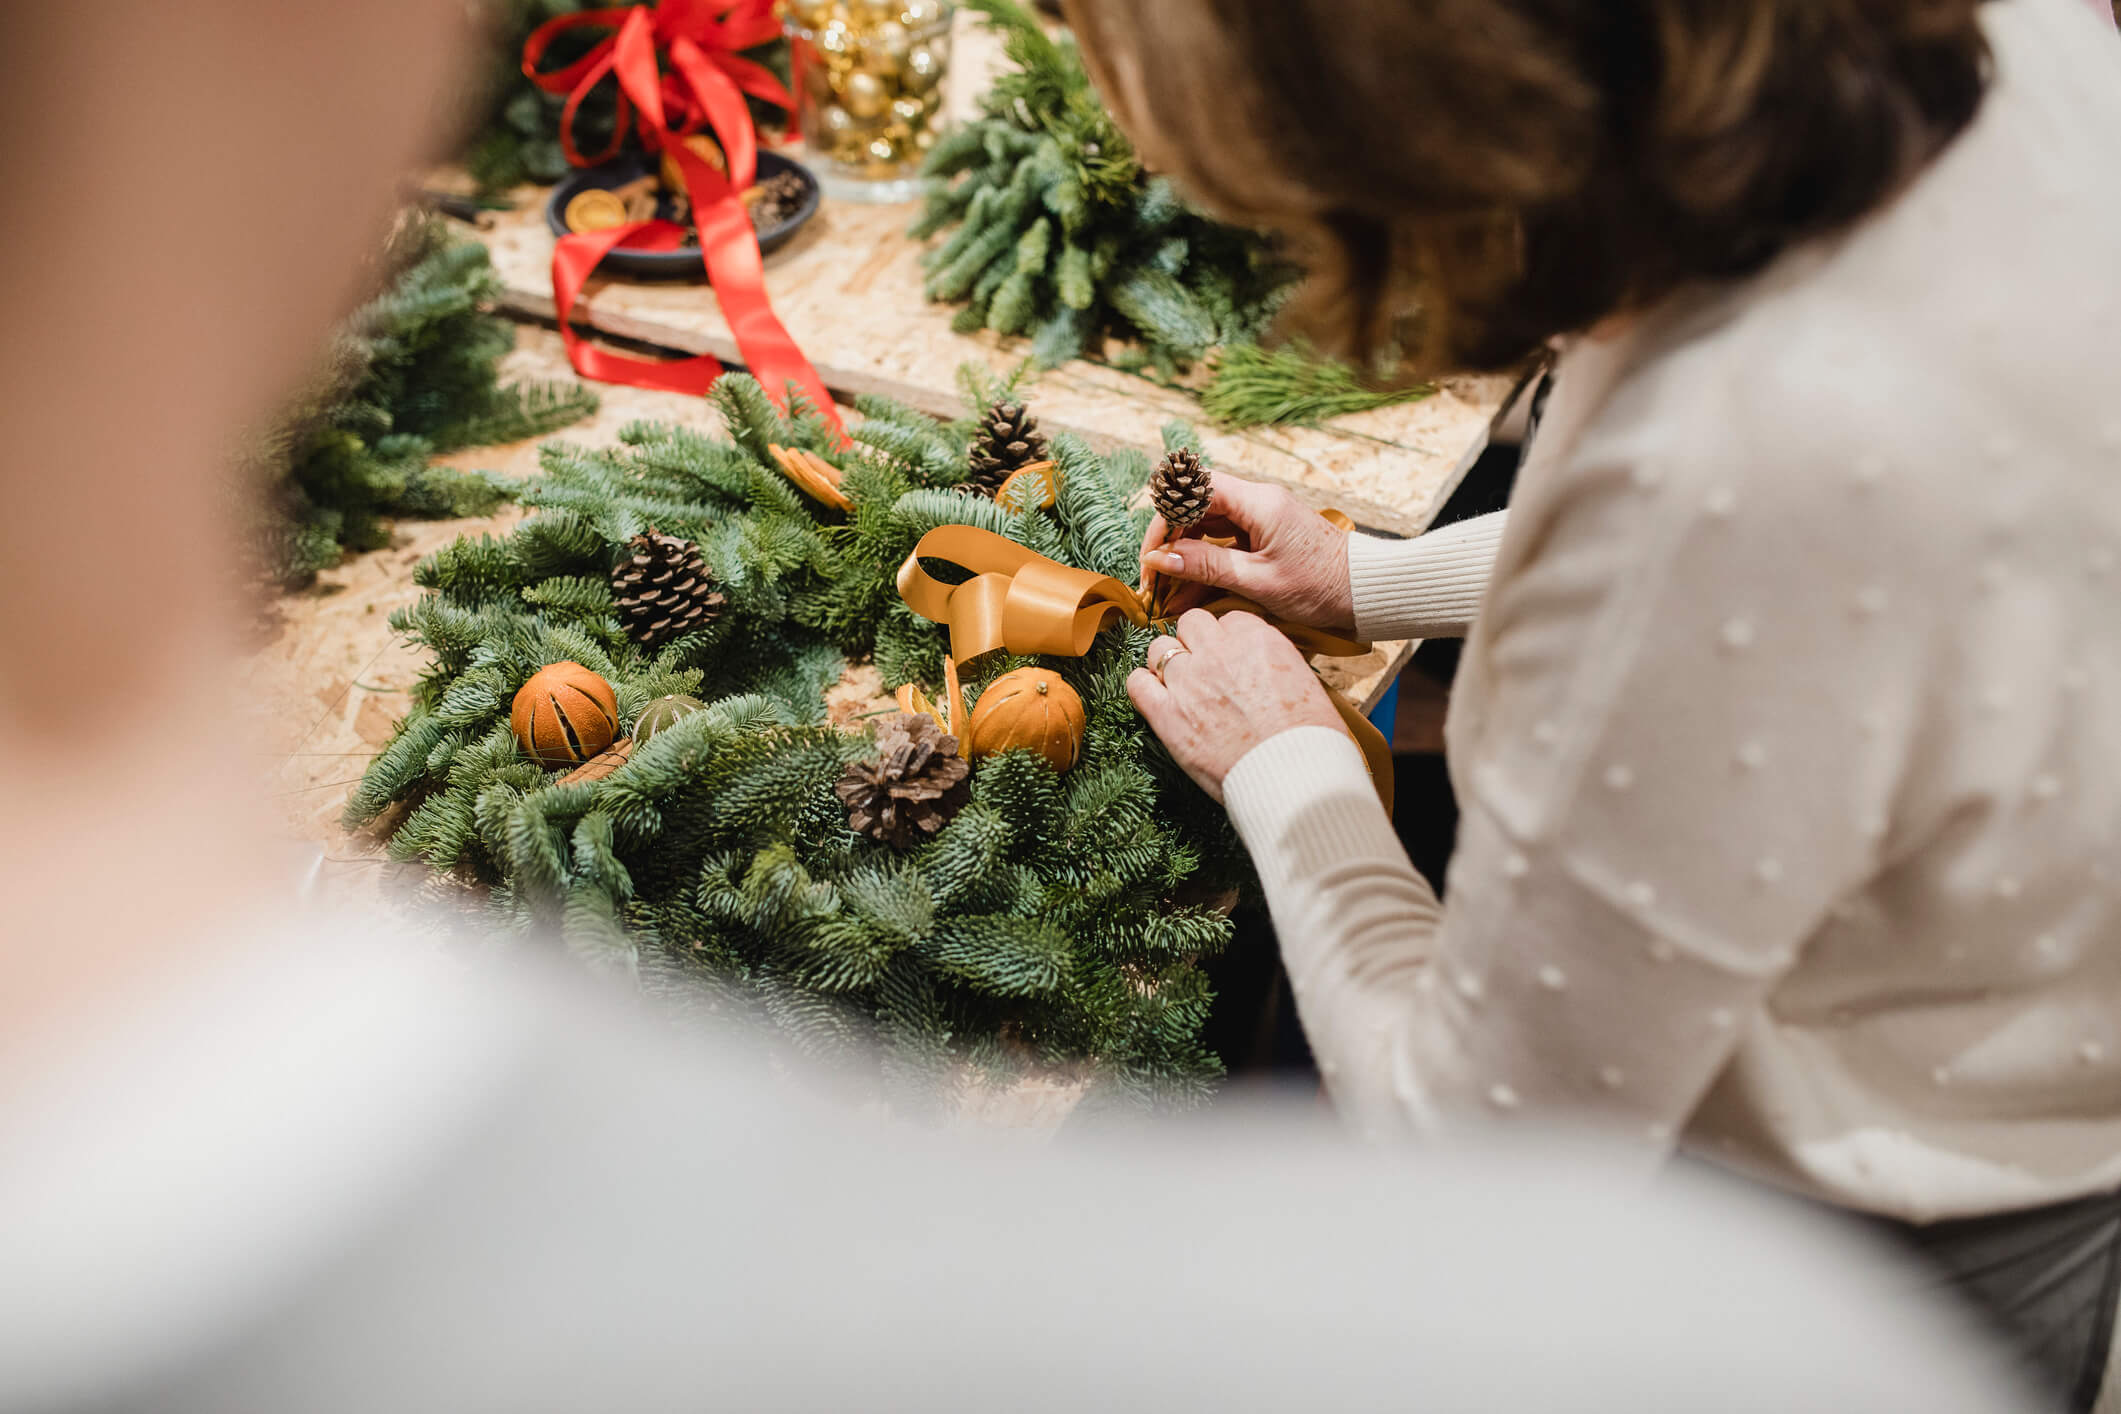 Closeup of a senior woman creating a holiday wreath.